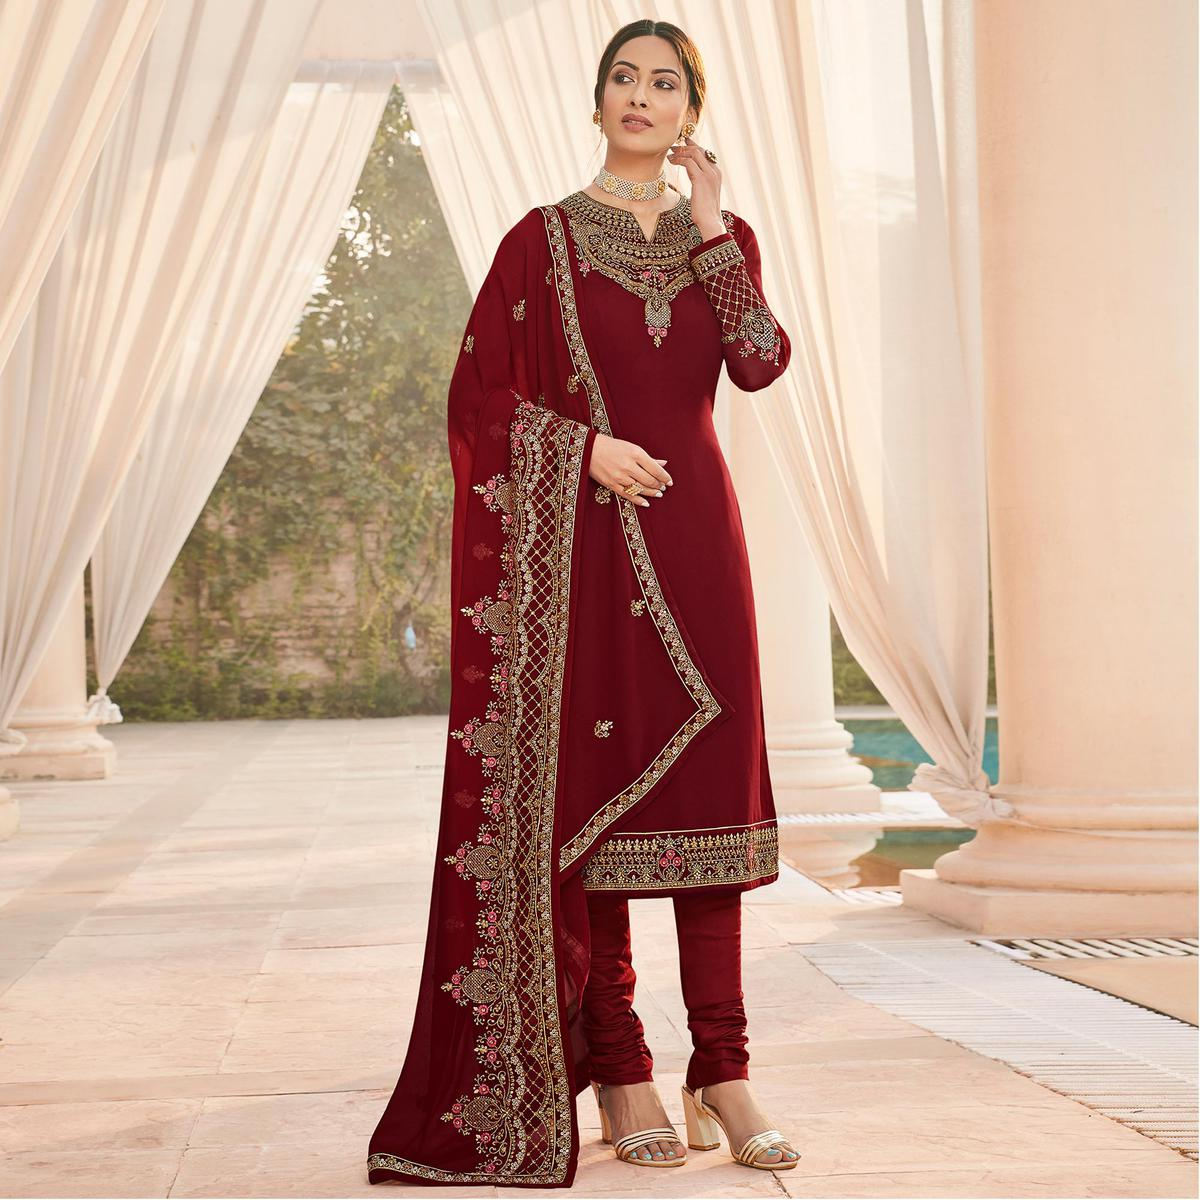 Exotic Maroon Coloured Party Wear Embroidered Stone Work Faux Georgette Salwar Suit